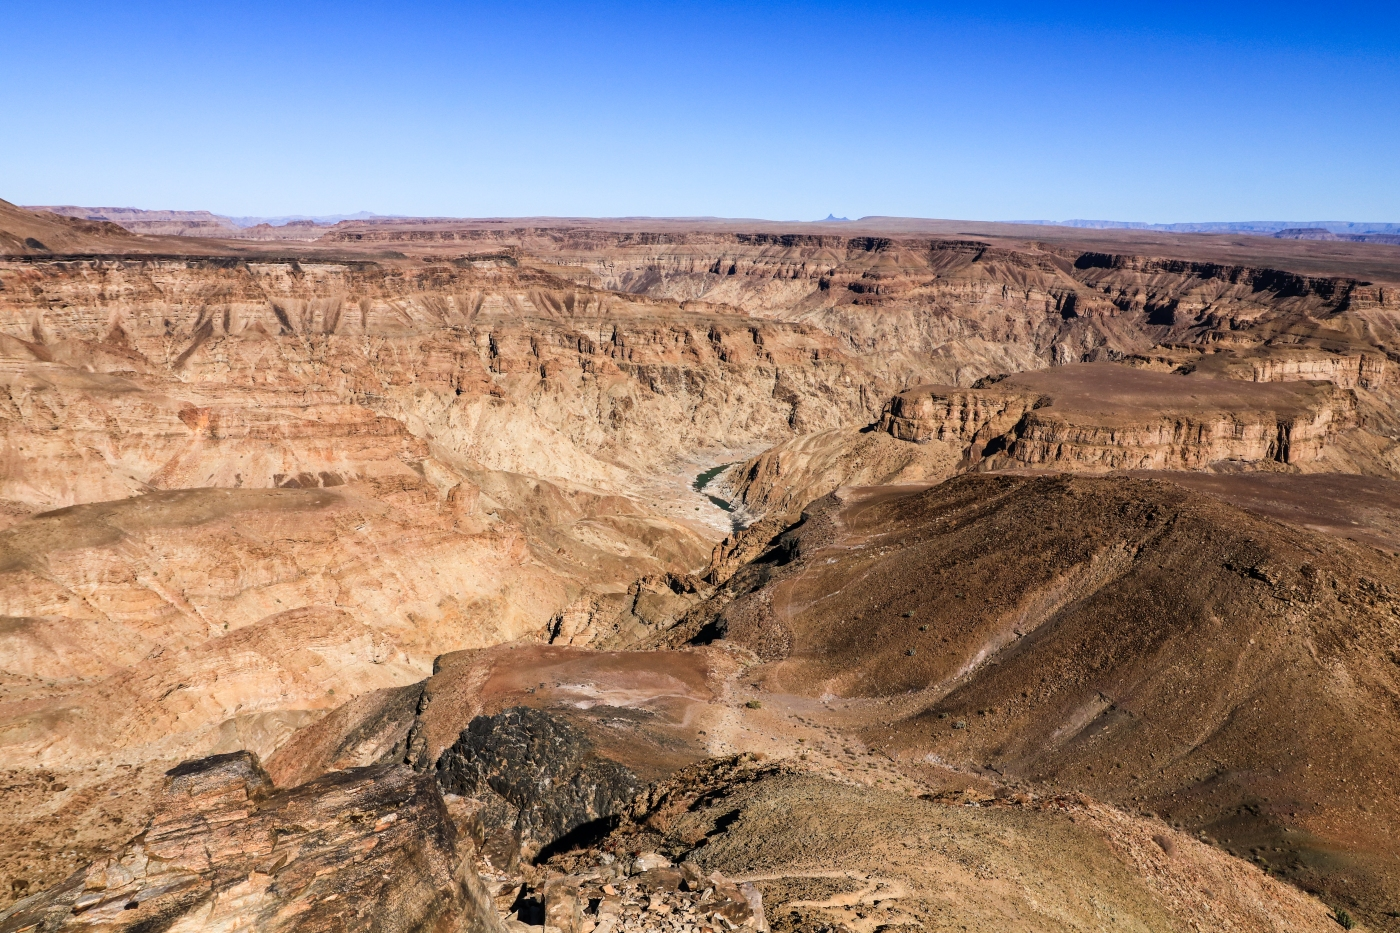 Hiking through the Fish River Canyon 90km in 5 days